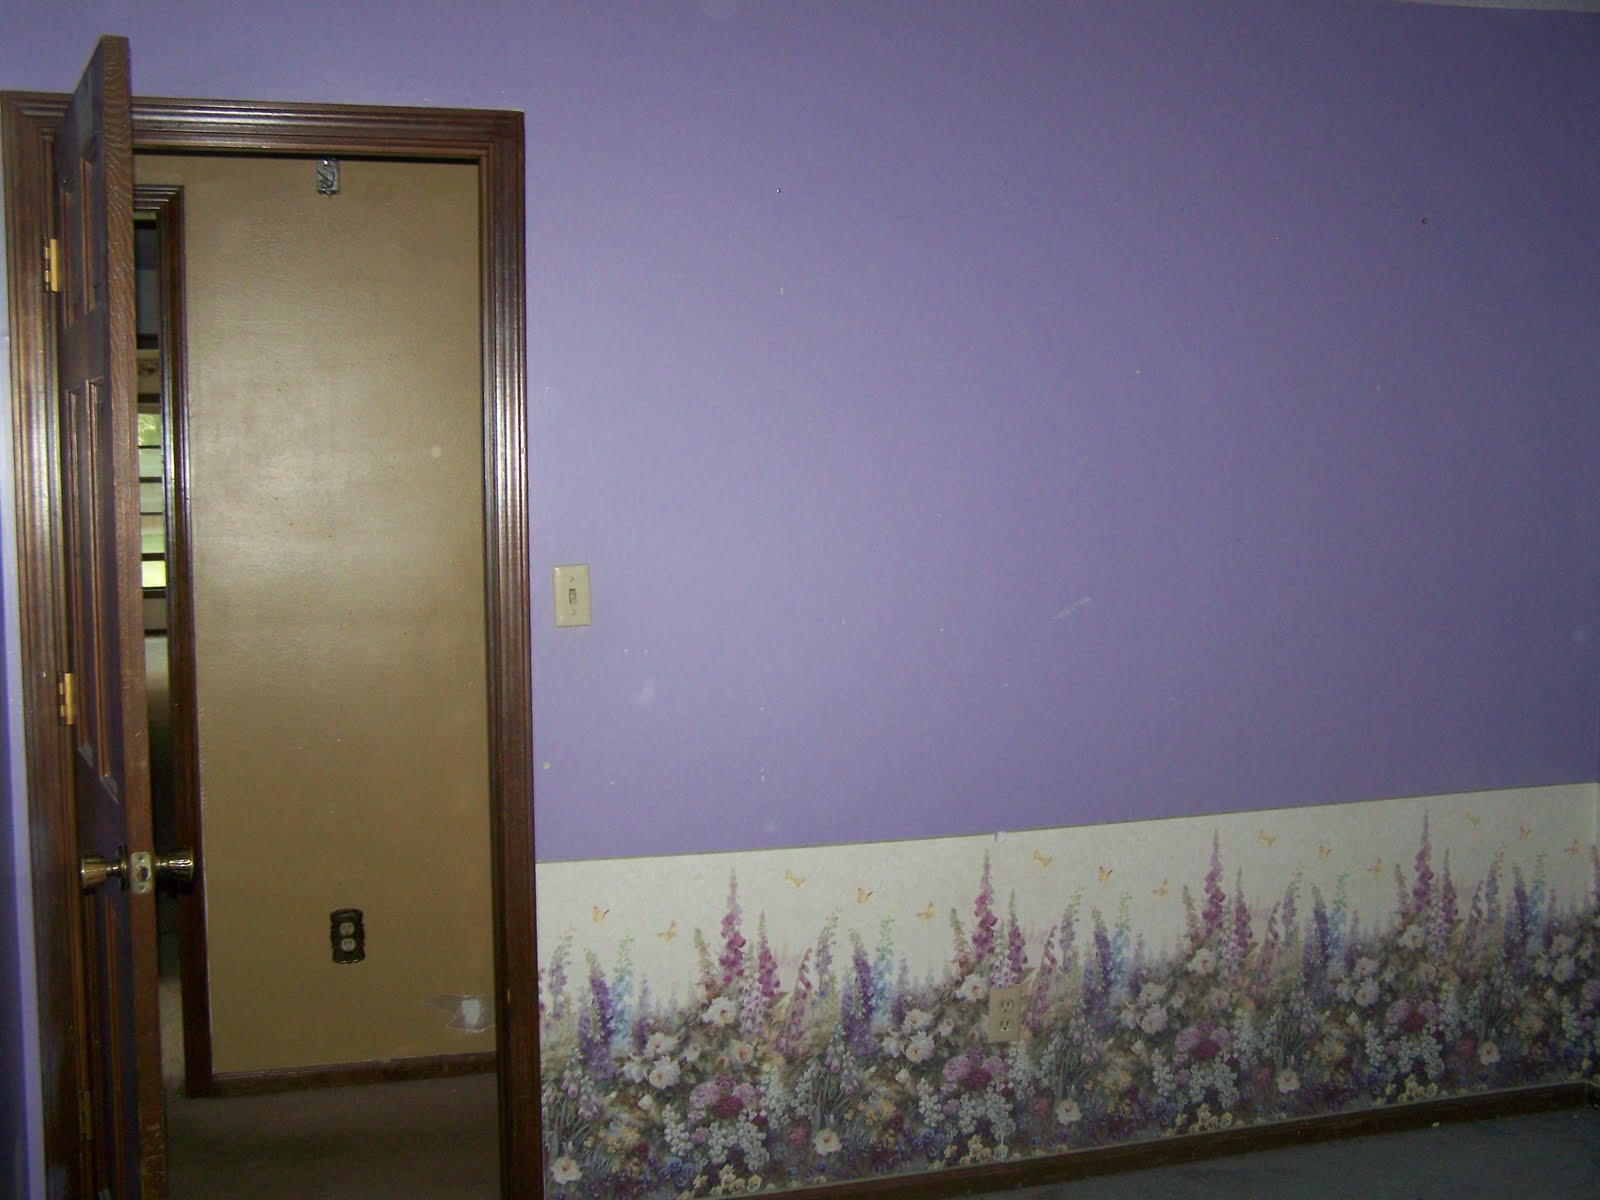 Guest room after wallpaper removal: